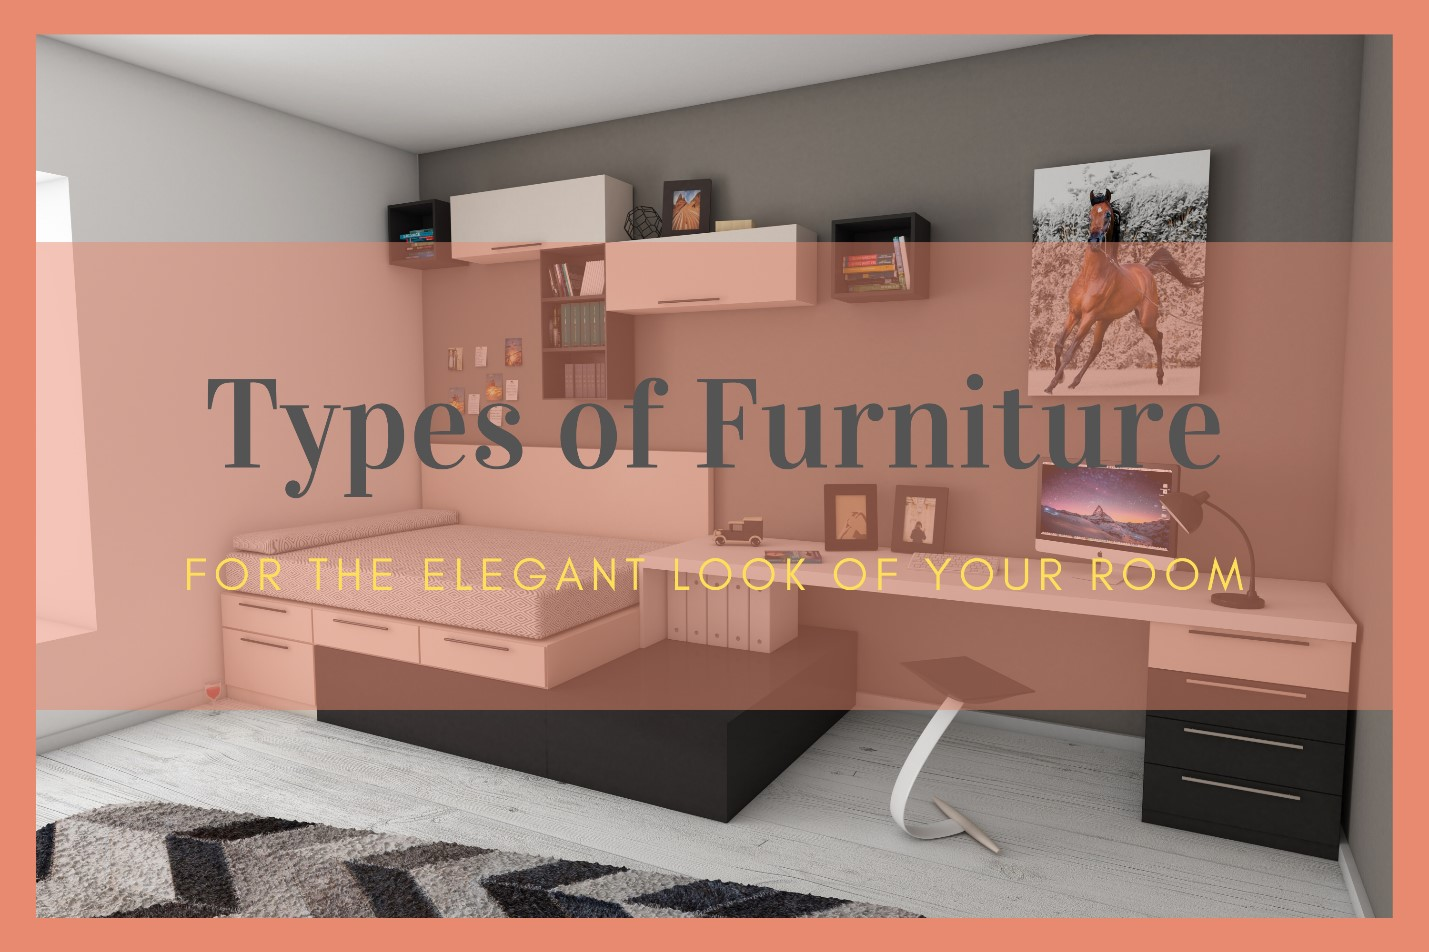 Which Type of Furniture you should have for Elegant Look of Your Bedroom